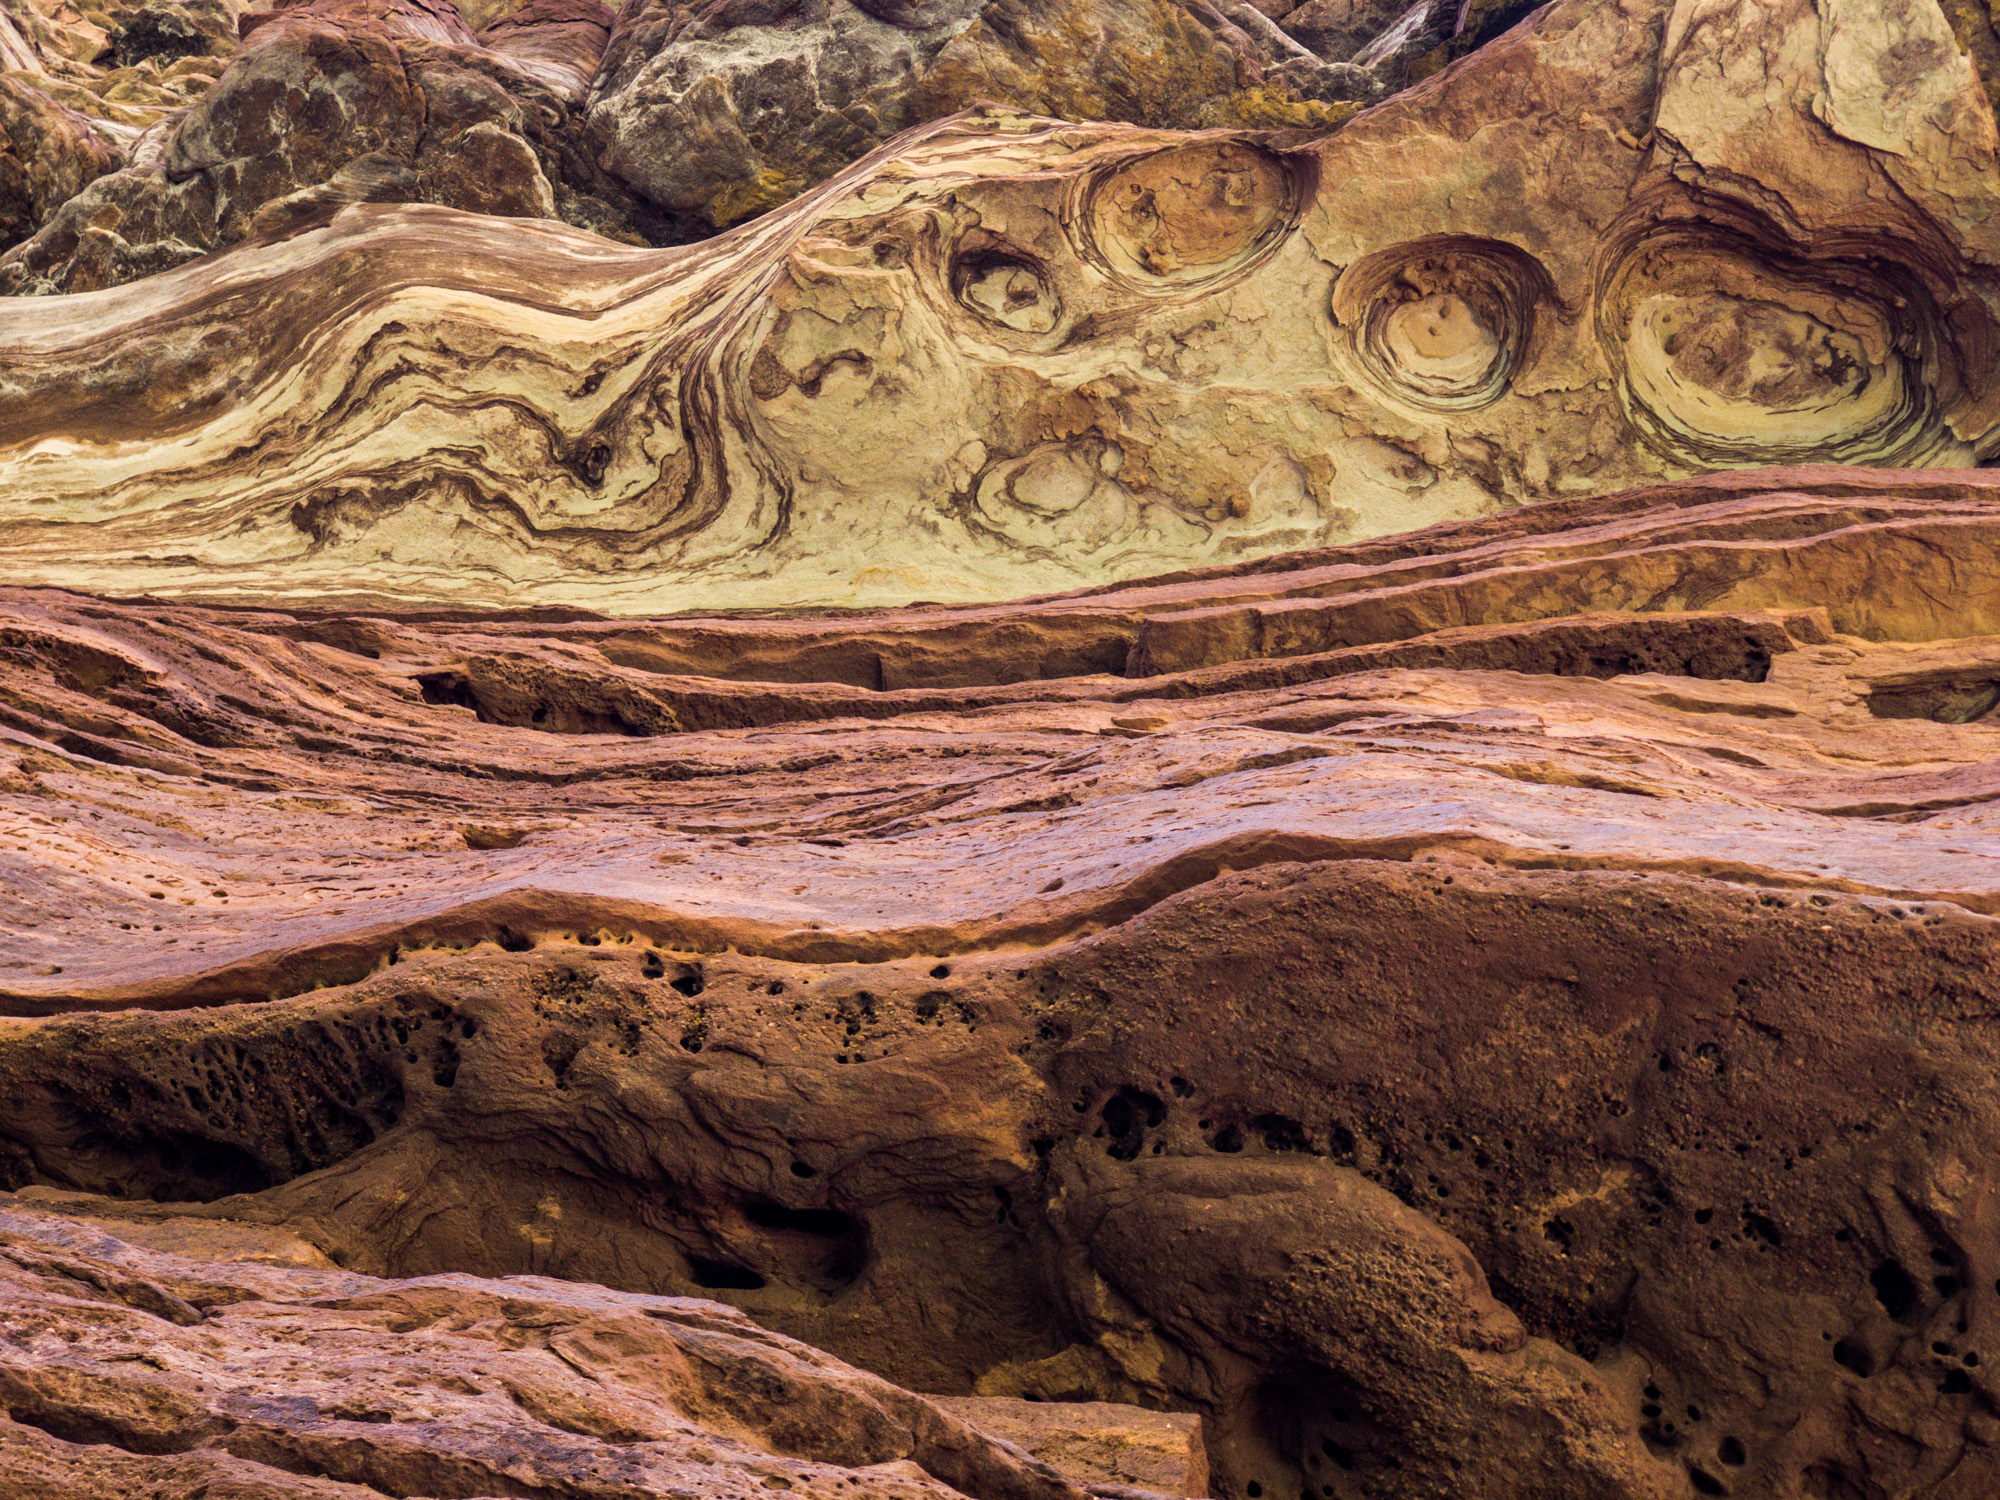 The interesting rocks inside the Grand Canyon